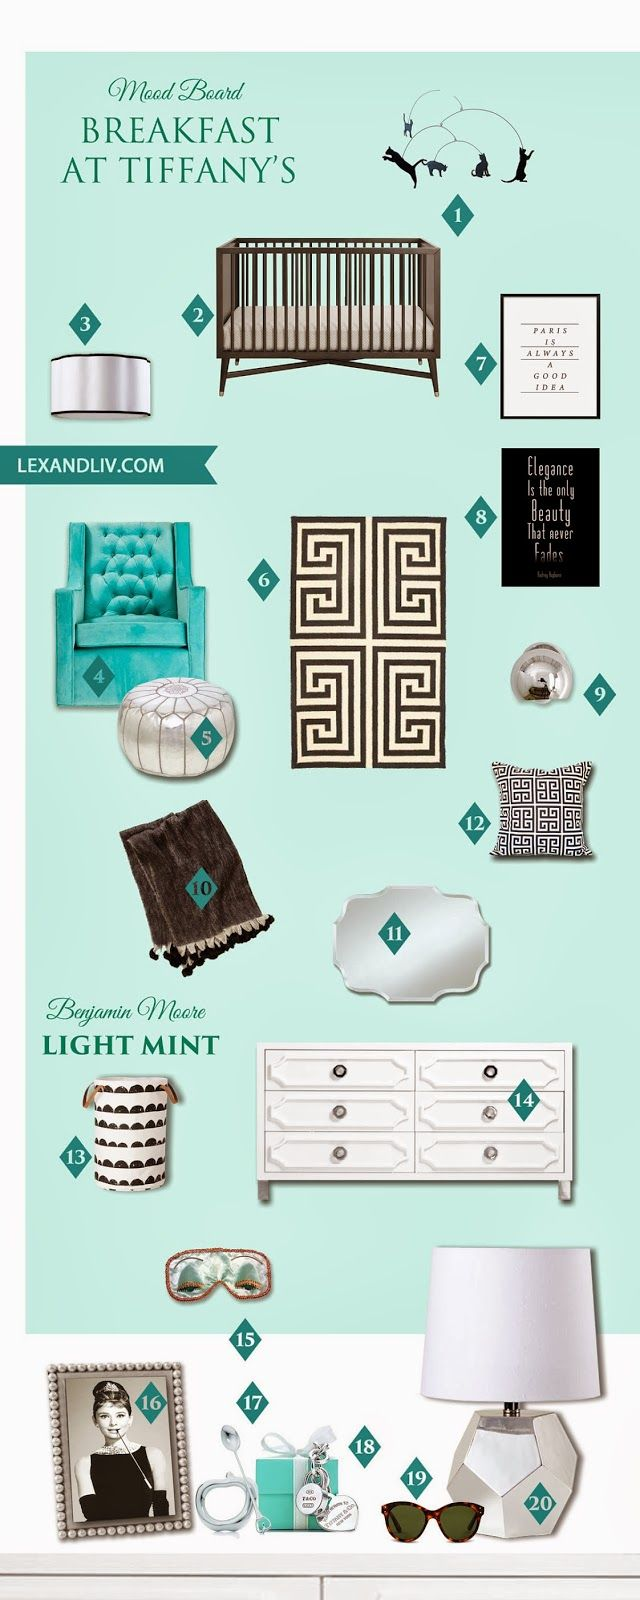 Breakfast at Tiffany's glam nursery. Tiffany blue, black & white. I would do lucite crib instead :)